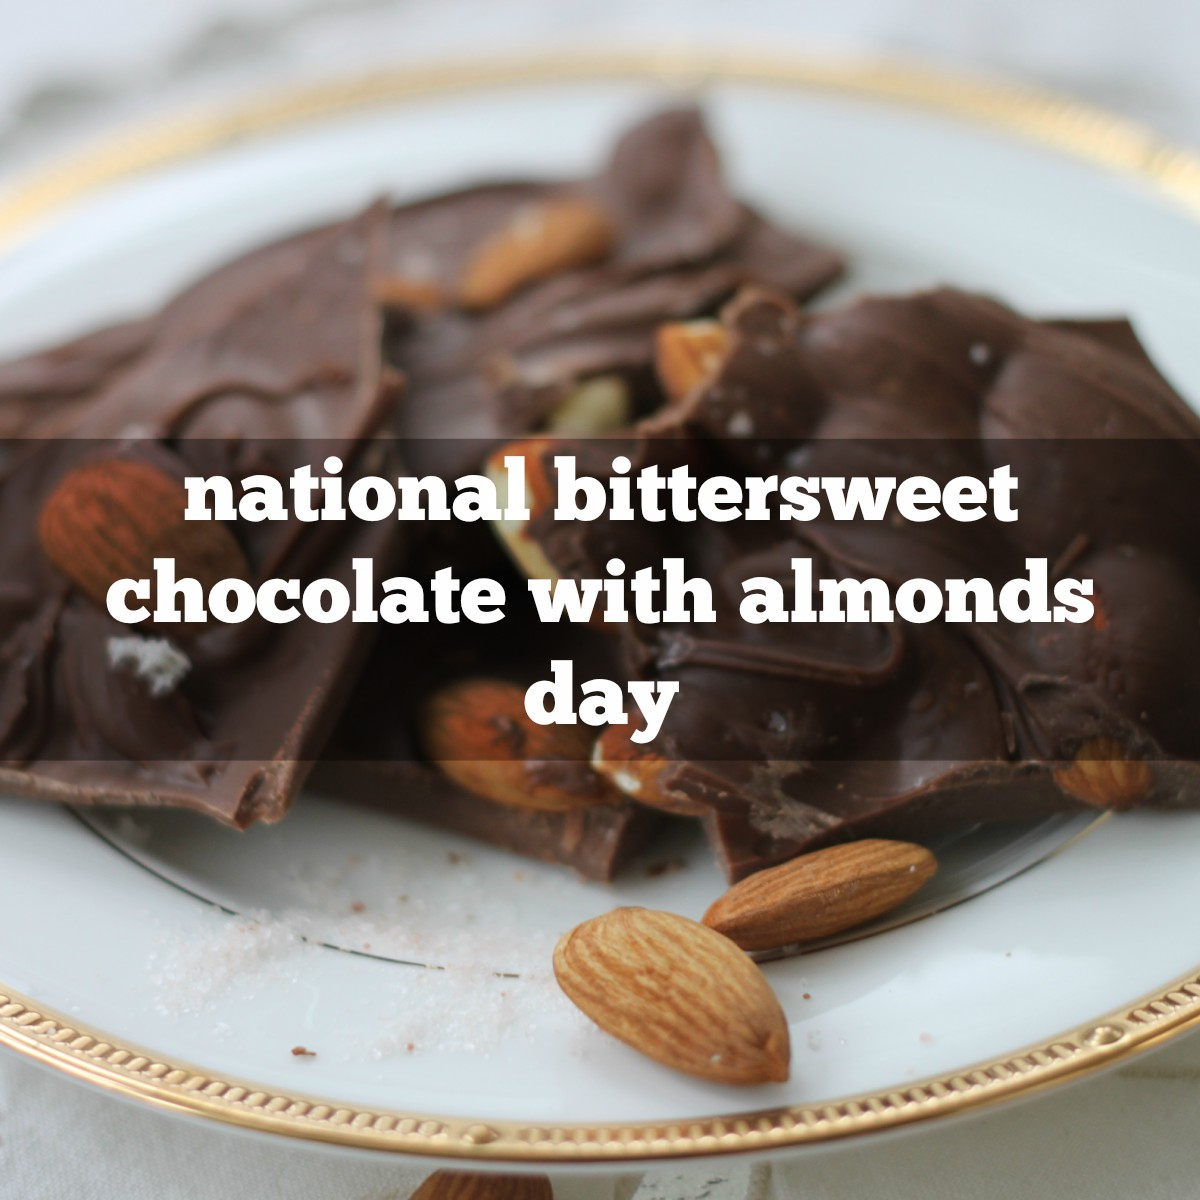 November 7 is National Bittersweet Chocolate with Almonds Day ...